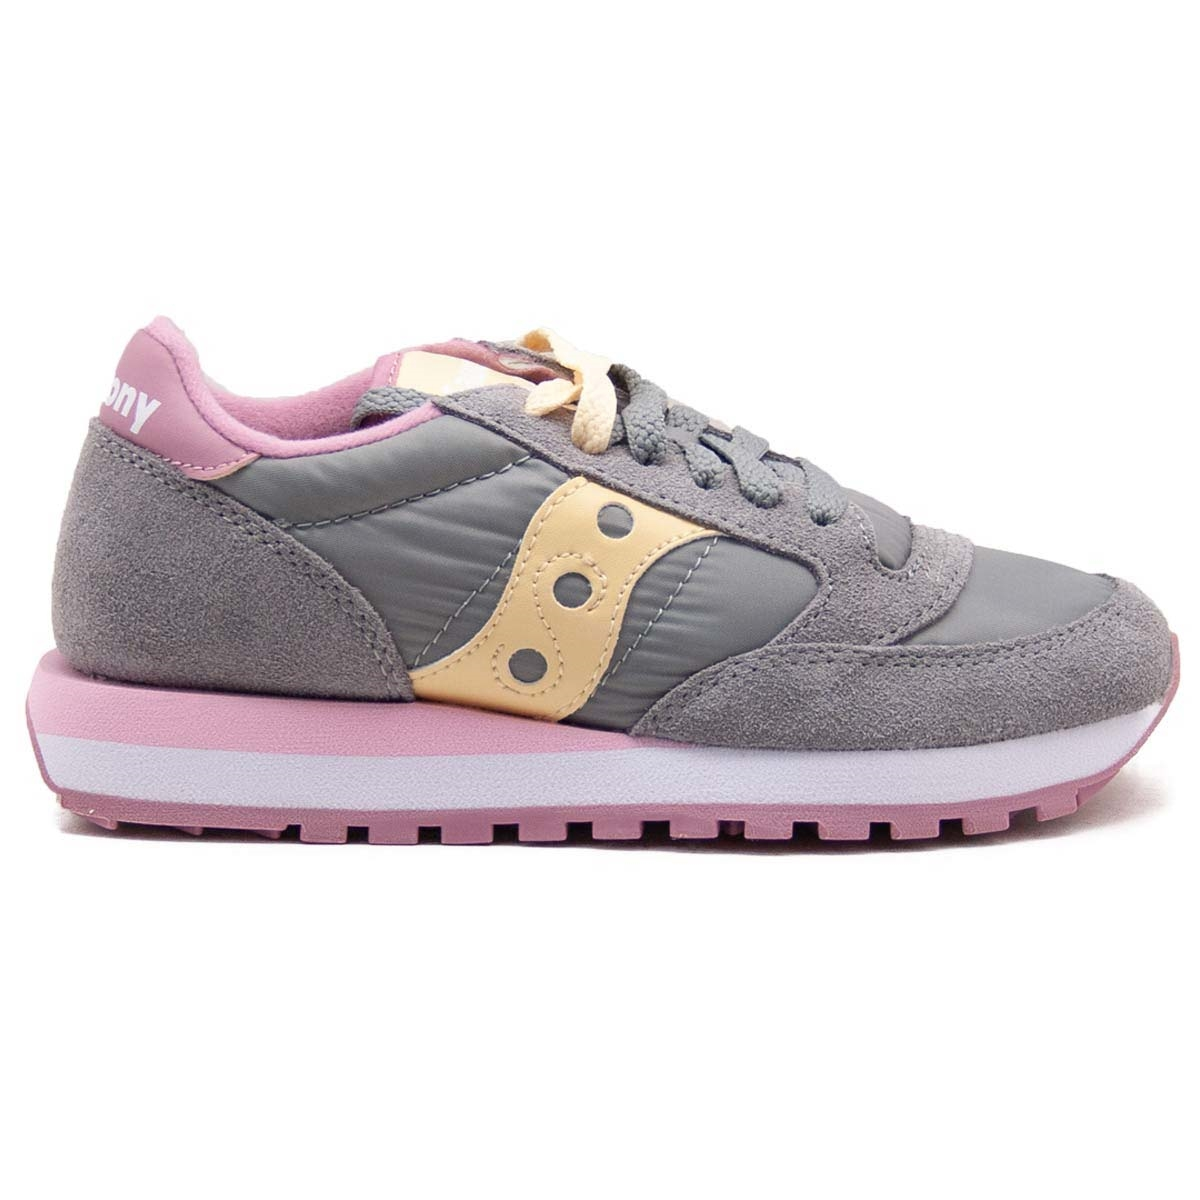 the best attitude 056b3 c82a9 Sneakers Saucony Jazz Original Grey Pink S1044-515 | Freesneak